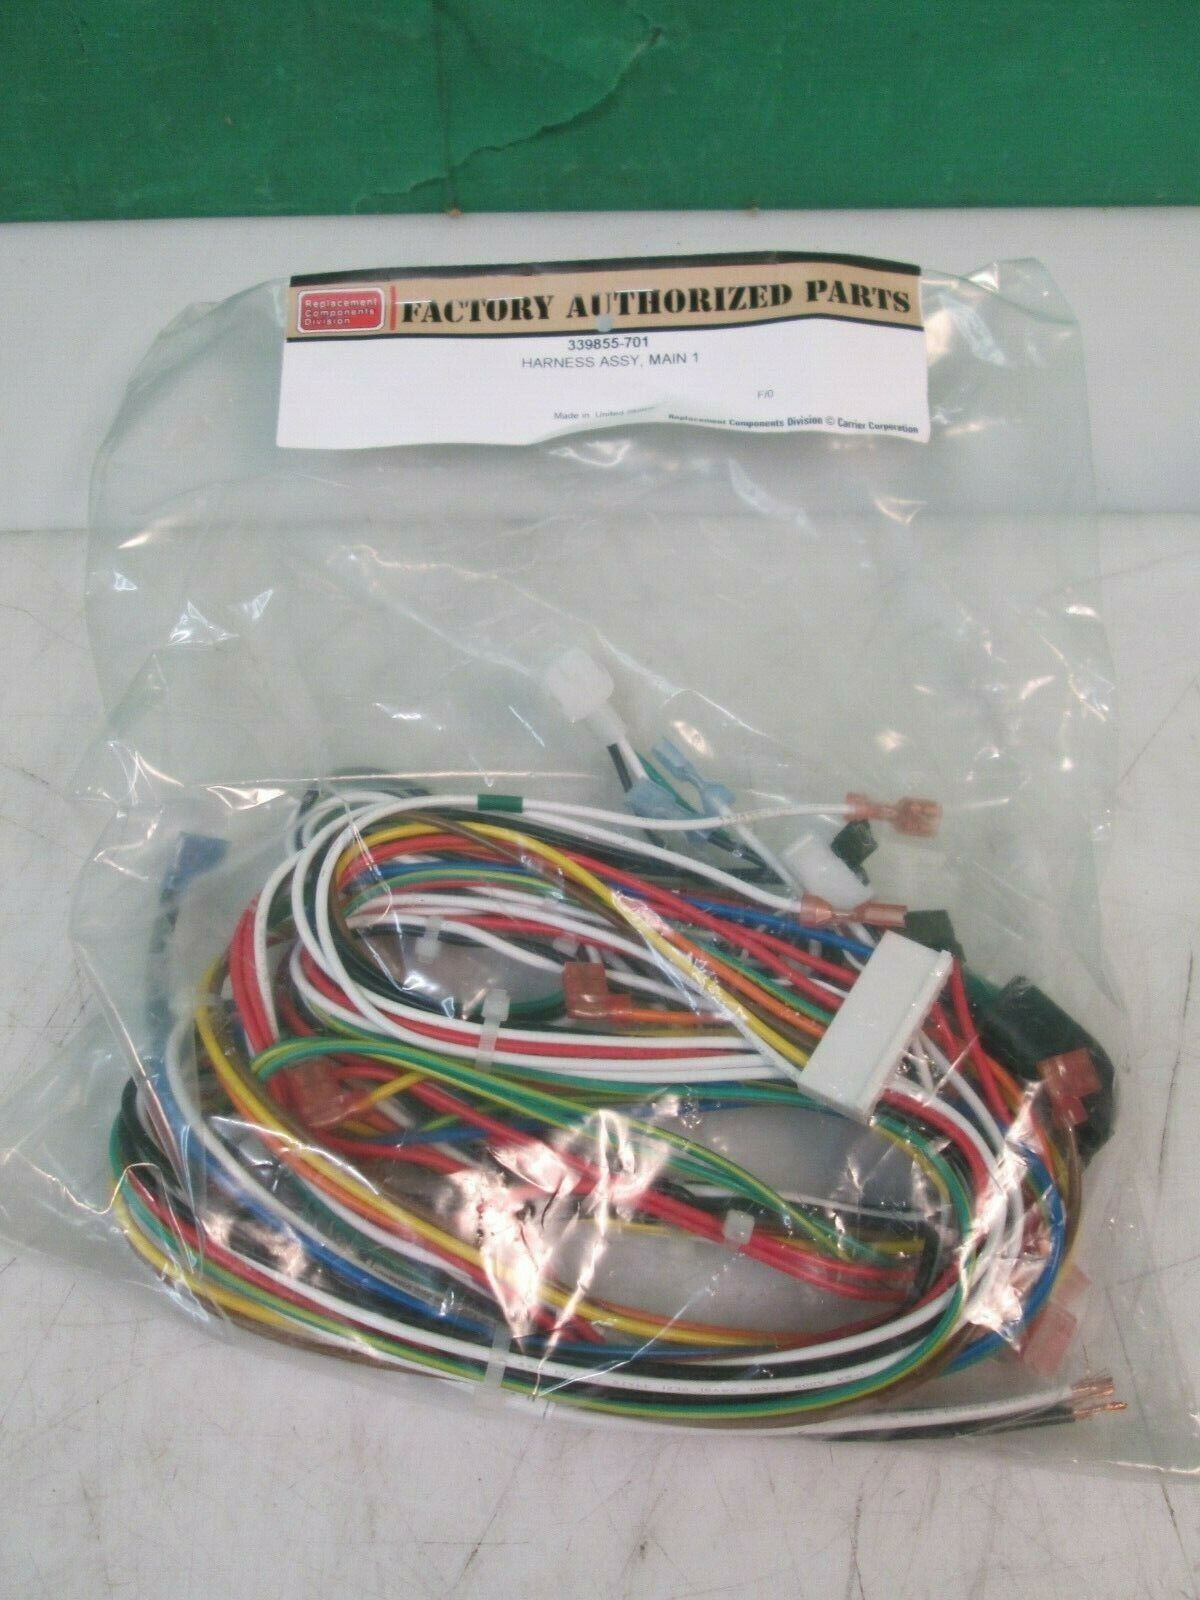 CARRIER BRYANT PAYNE FURNACE WIRING HARNESS MAIN 1 339855-701 NEW for sale  onlineeBay